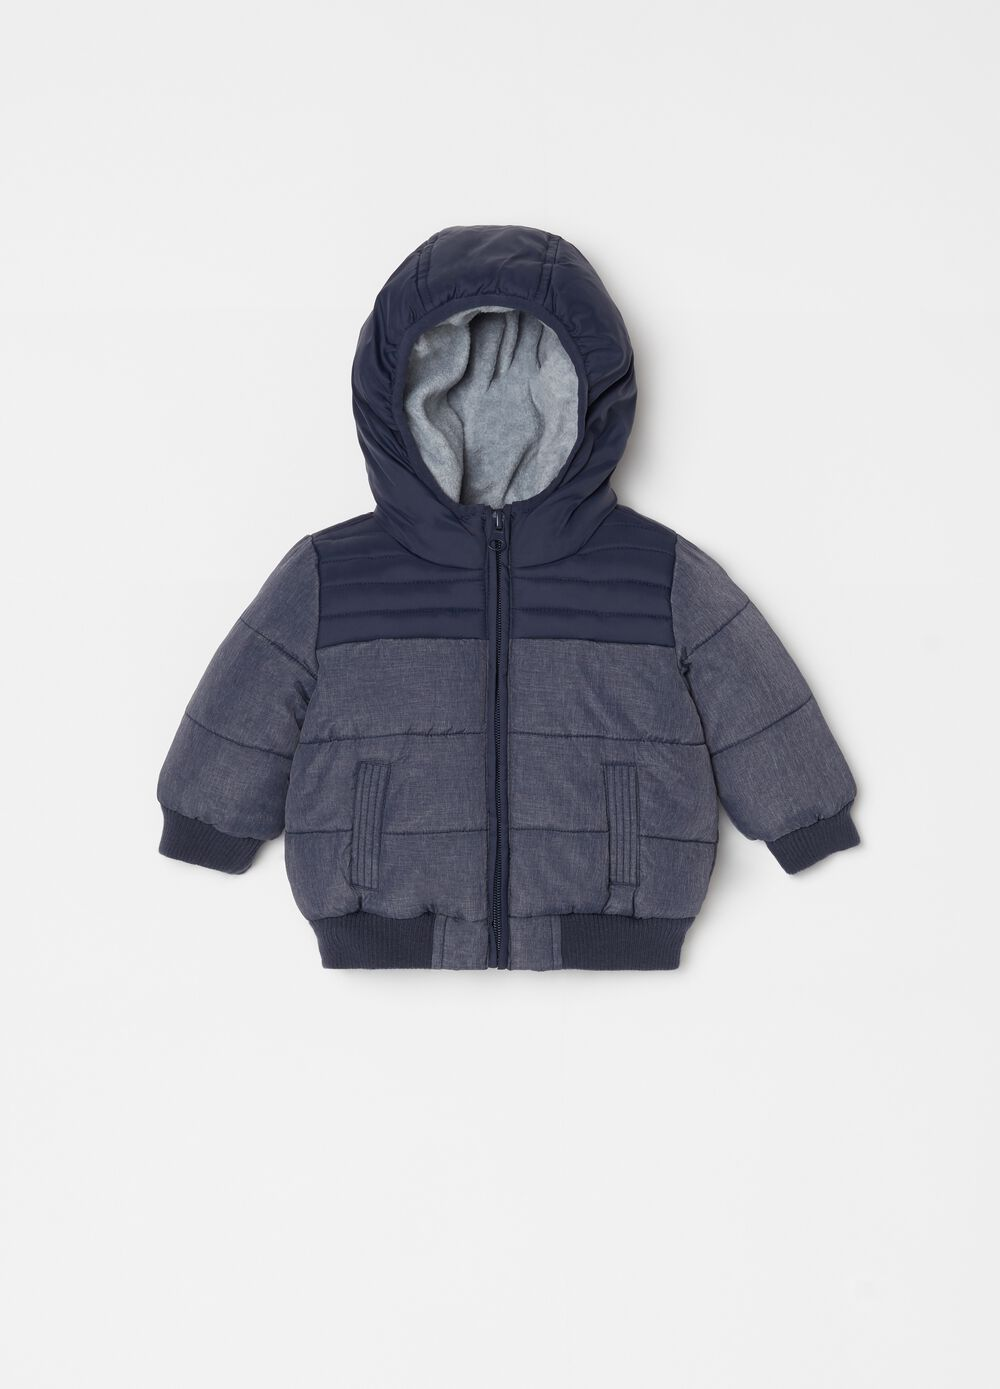 Padded jacket with pockets and zip